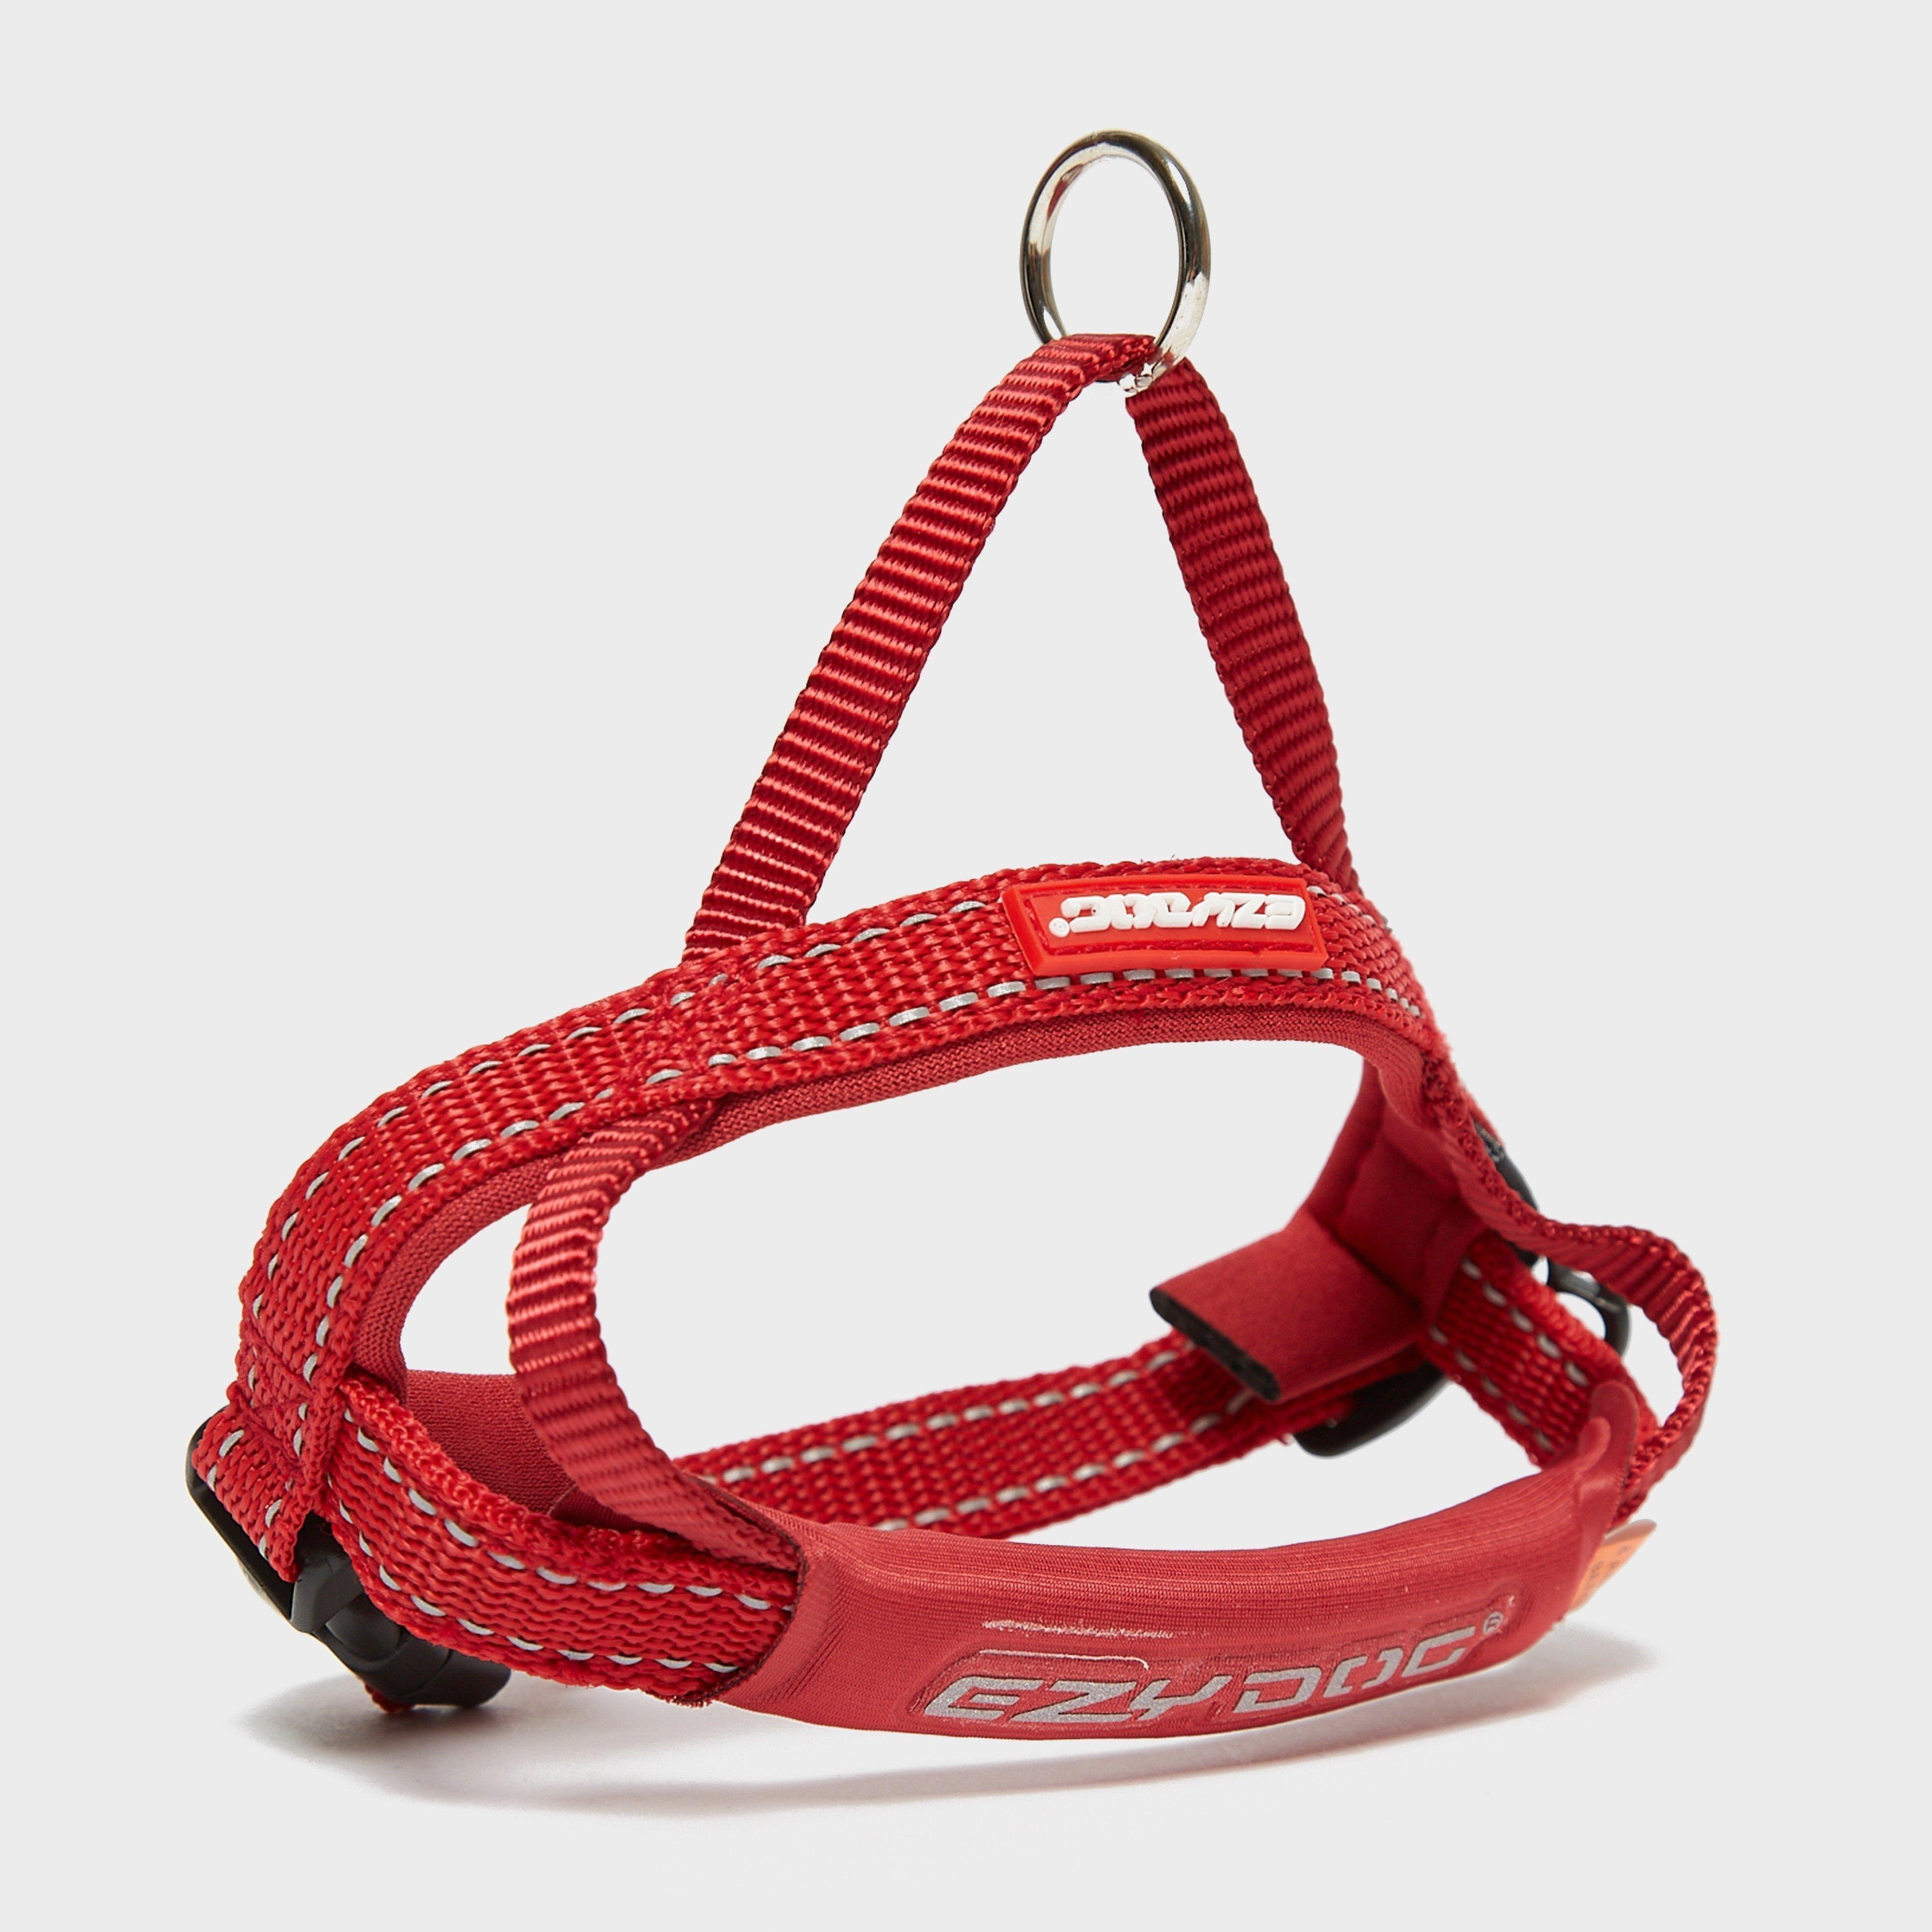 Image of Ezy-Dog Quick Fit Harness (Xs) - Red/Harness, Red/HARNESS